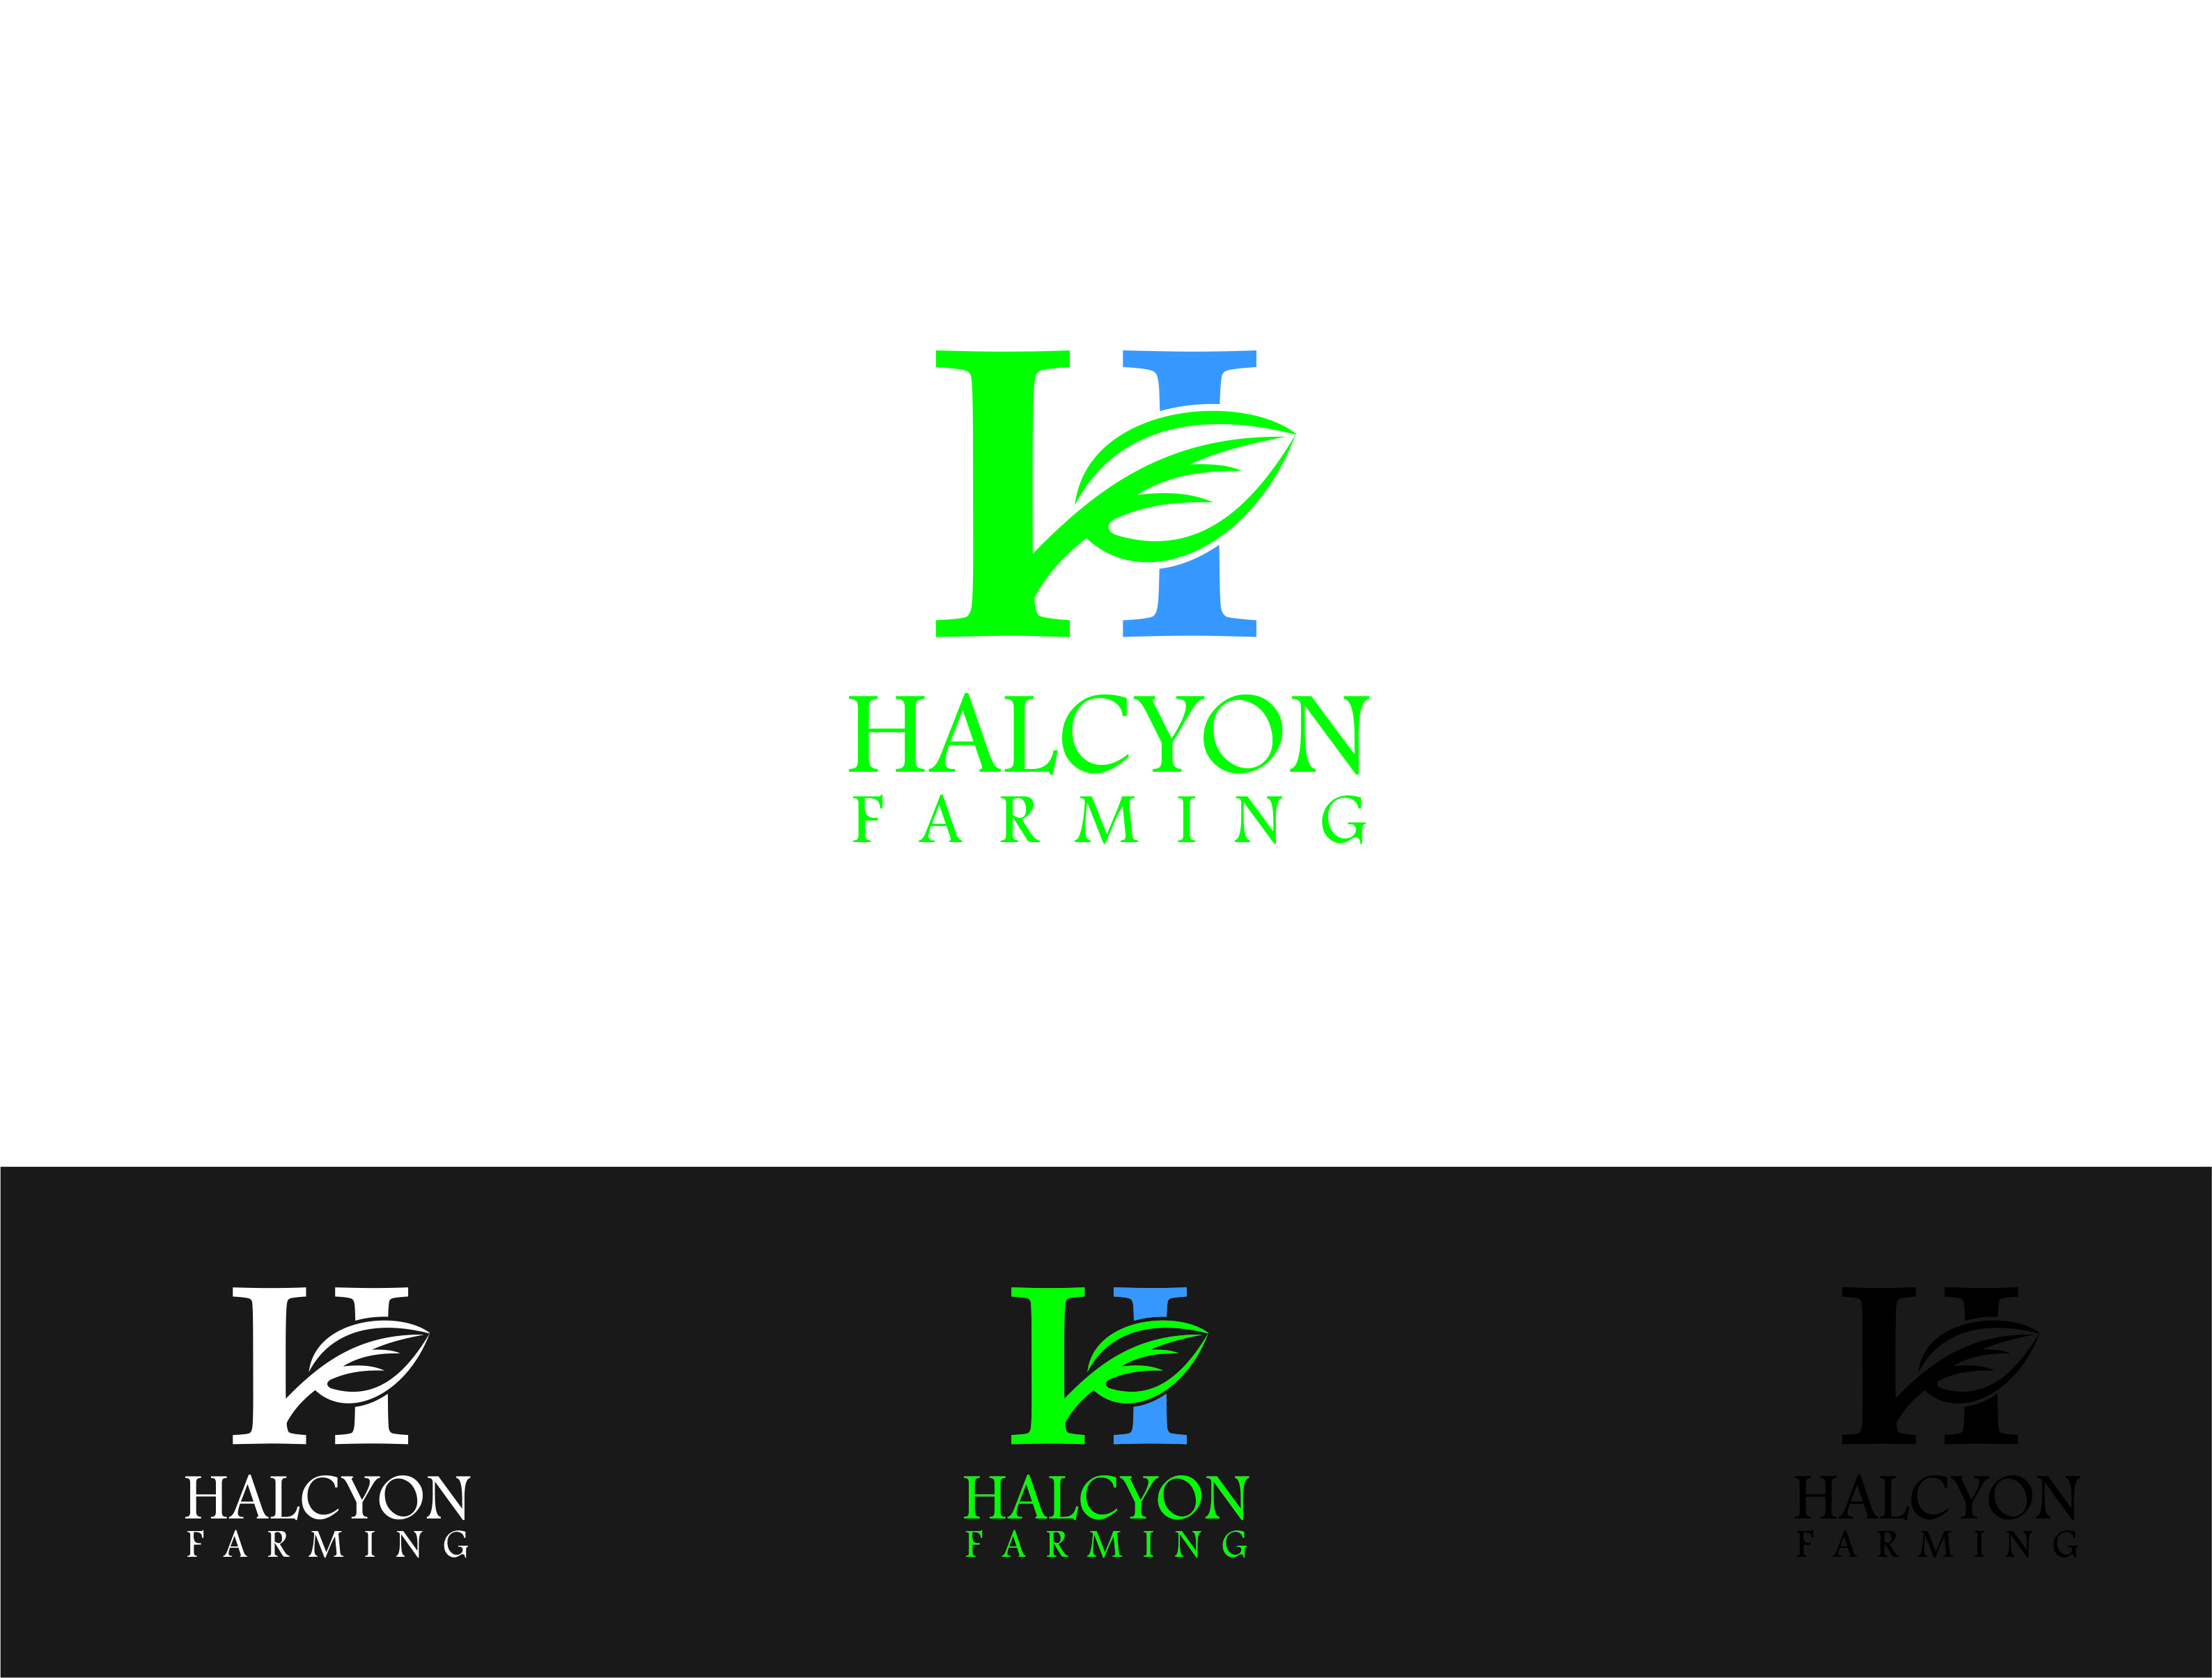 Logo Design by Dian Jatmiko - Entry No. 28 in the Logo Design Contest Creative Logo Design for Halcyon Farming.